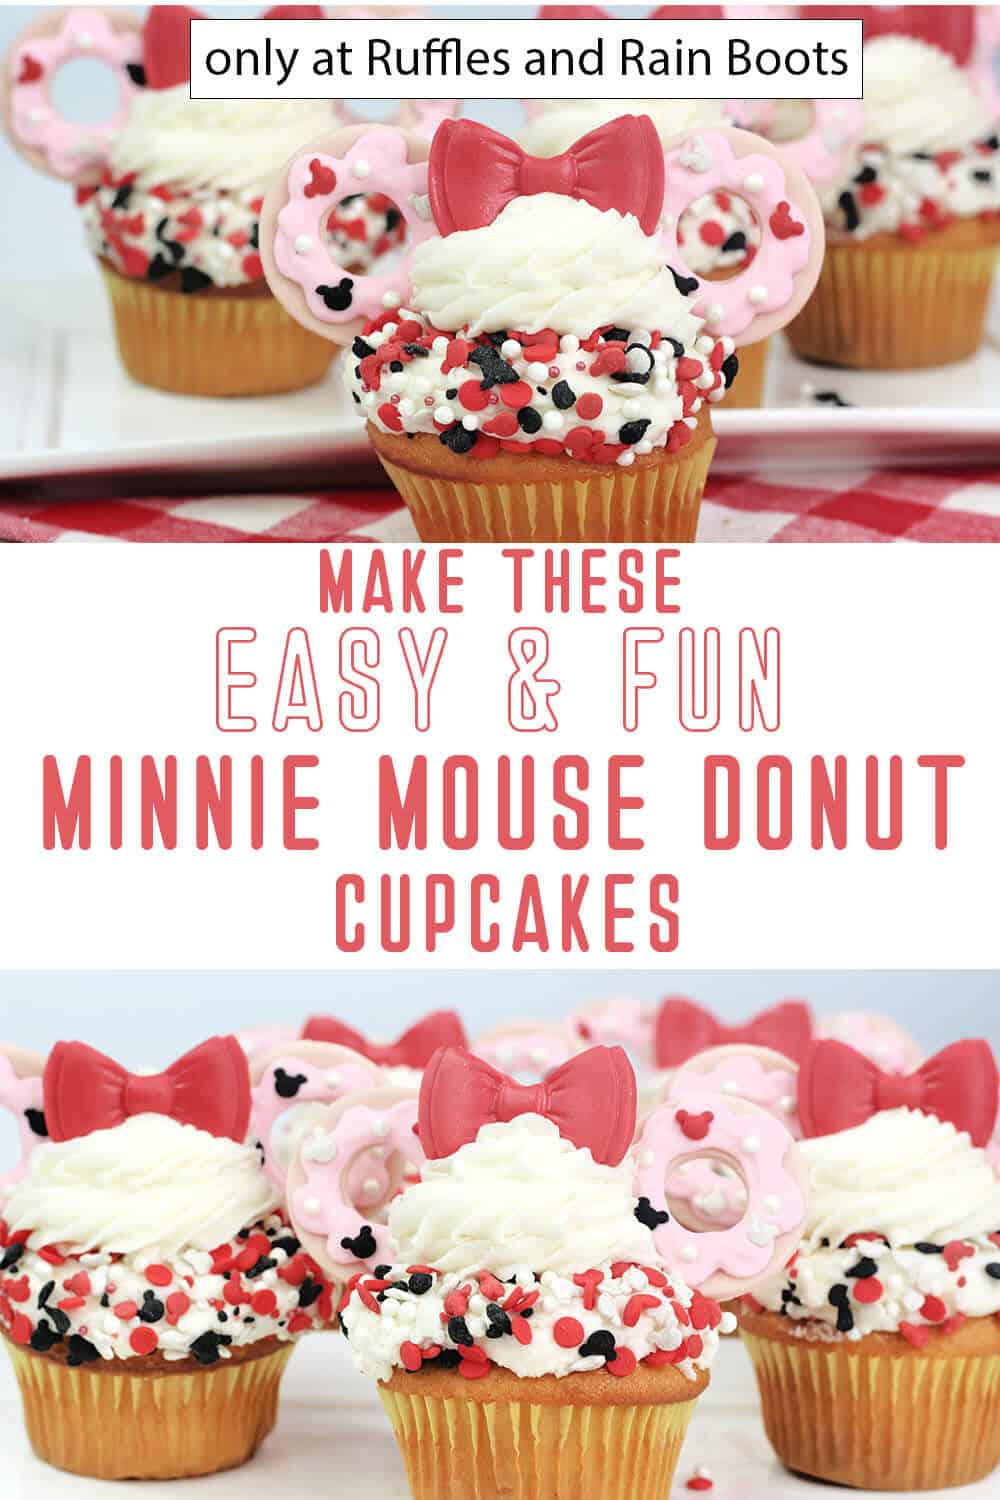 photo collage of donut minnie mouse cupcakes with text which reads make this easy & fun minnie mouse donut cupcakes